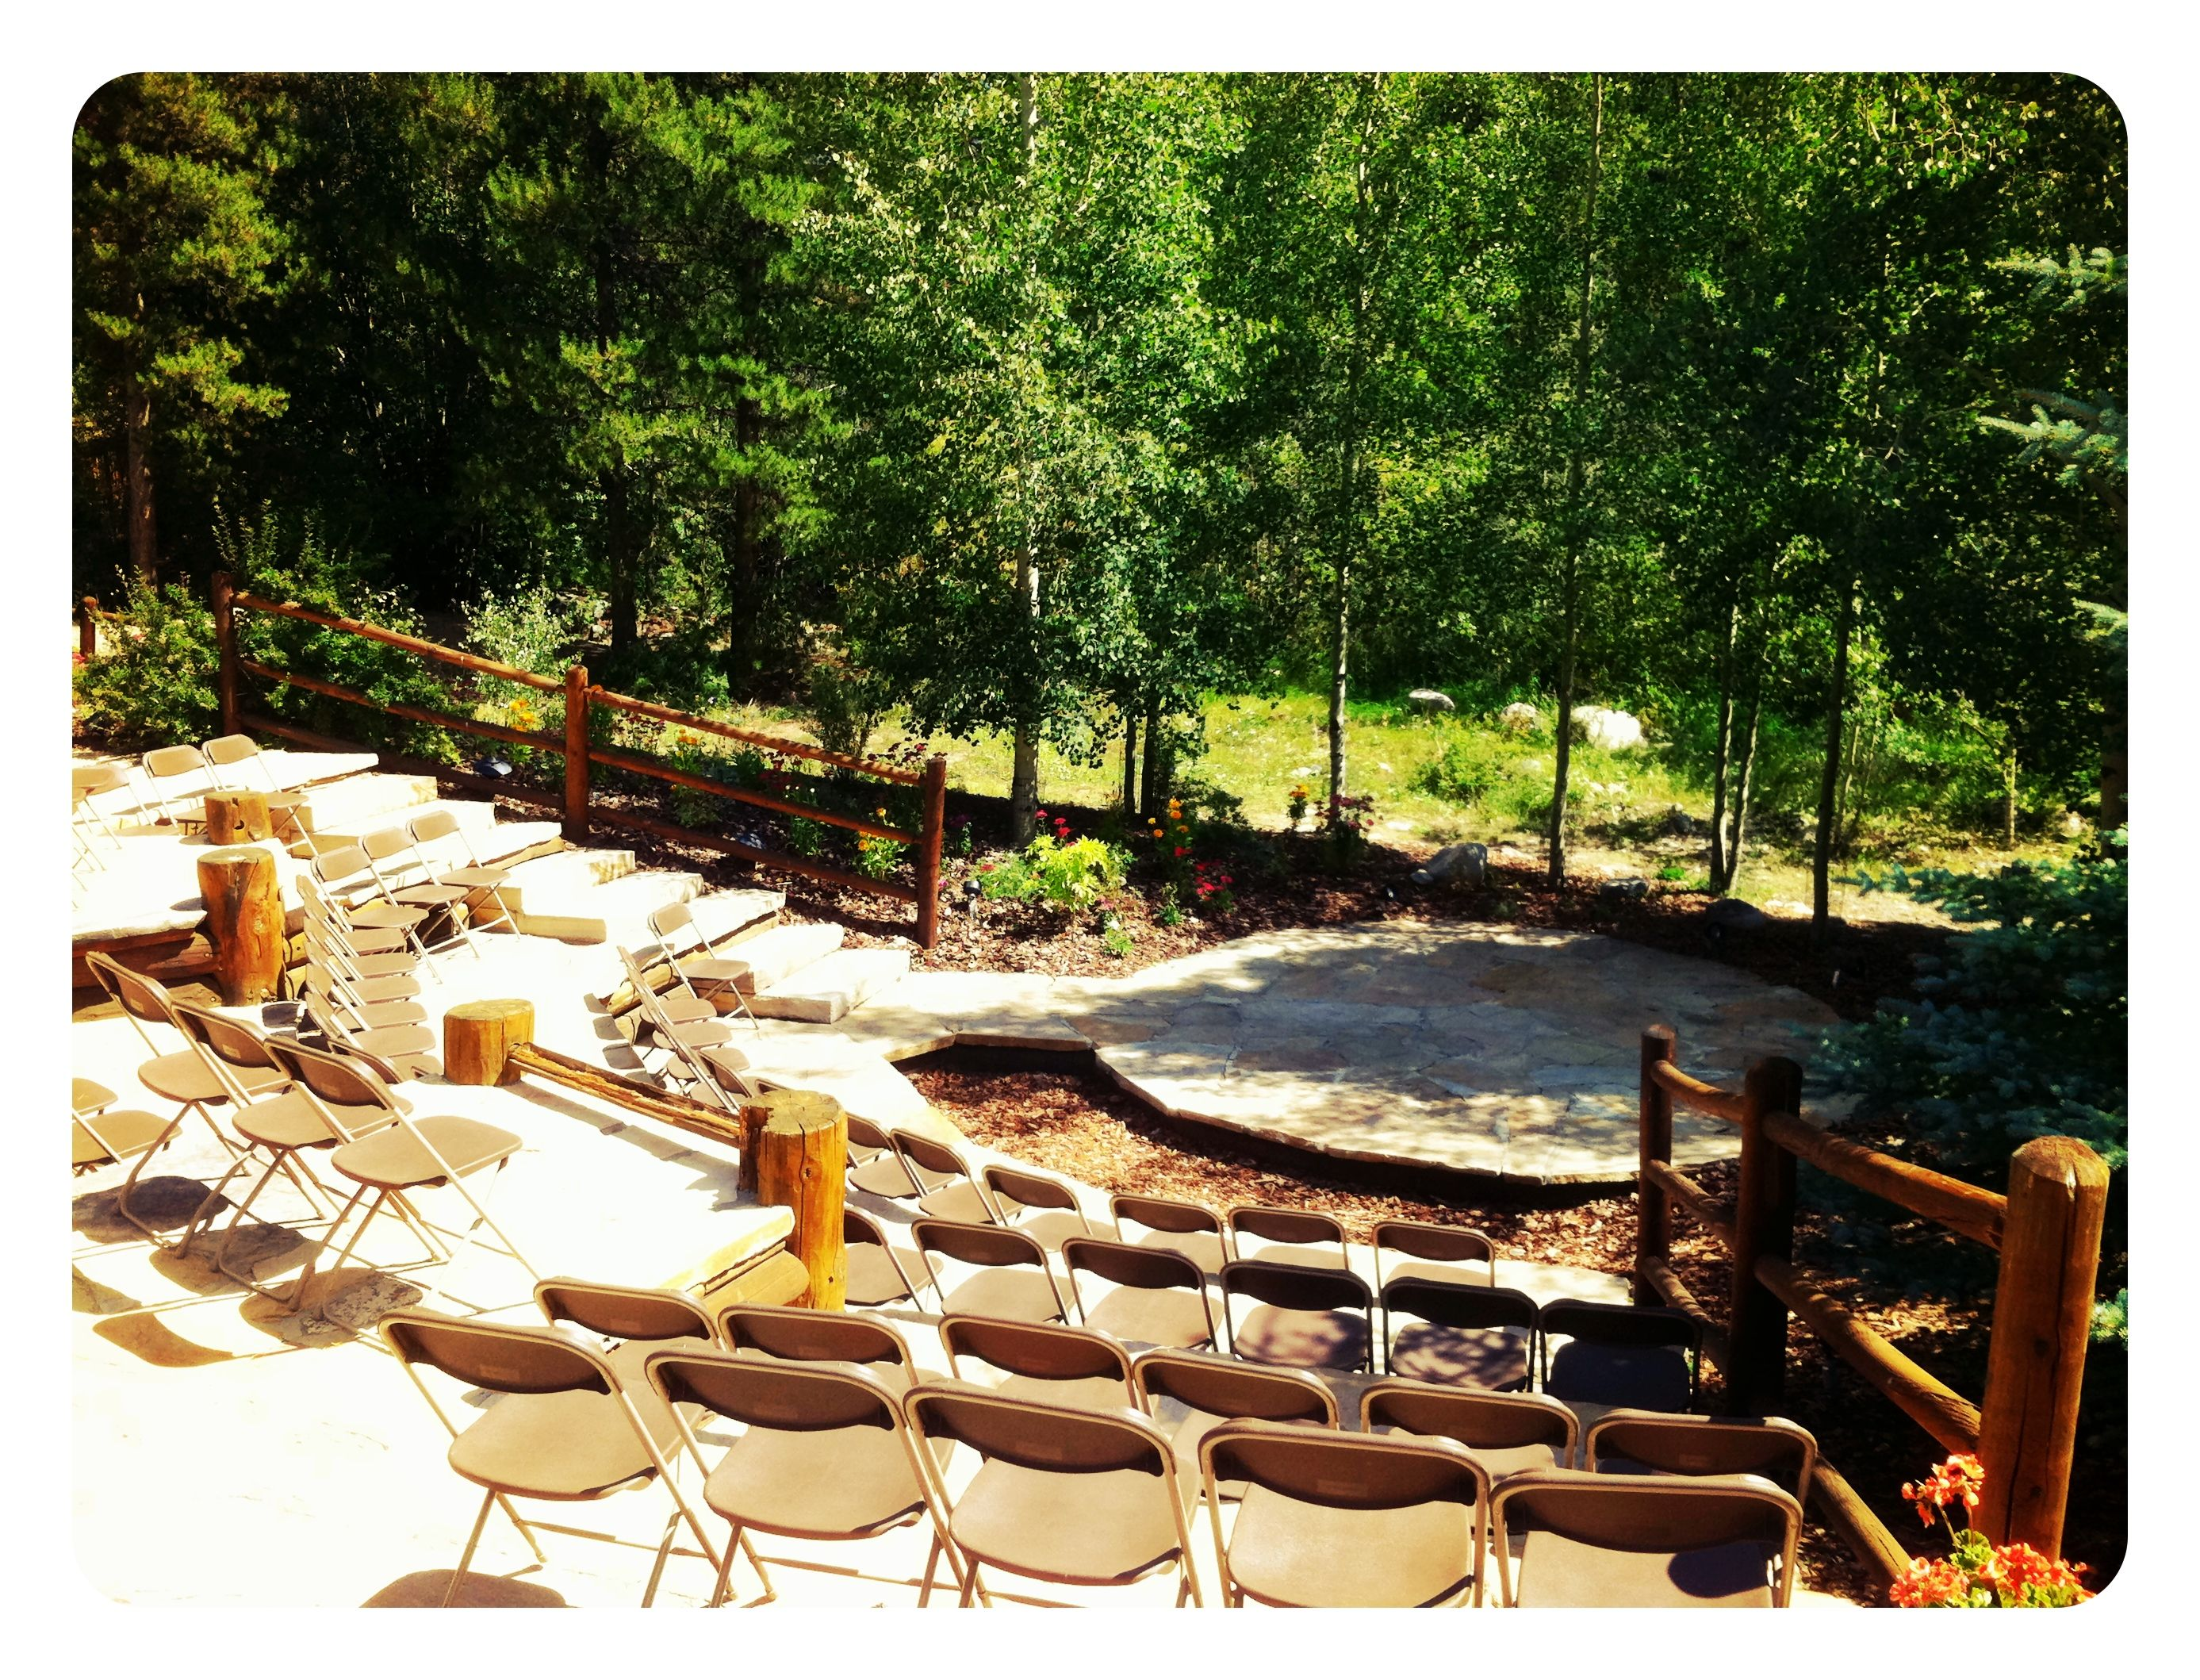 CEREMONY Quaking Aspen Amphitheatre Outside Wedding Ceremony Location In Keystone Colorado